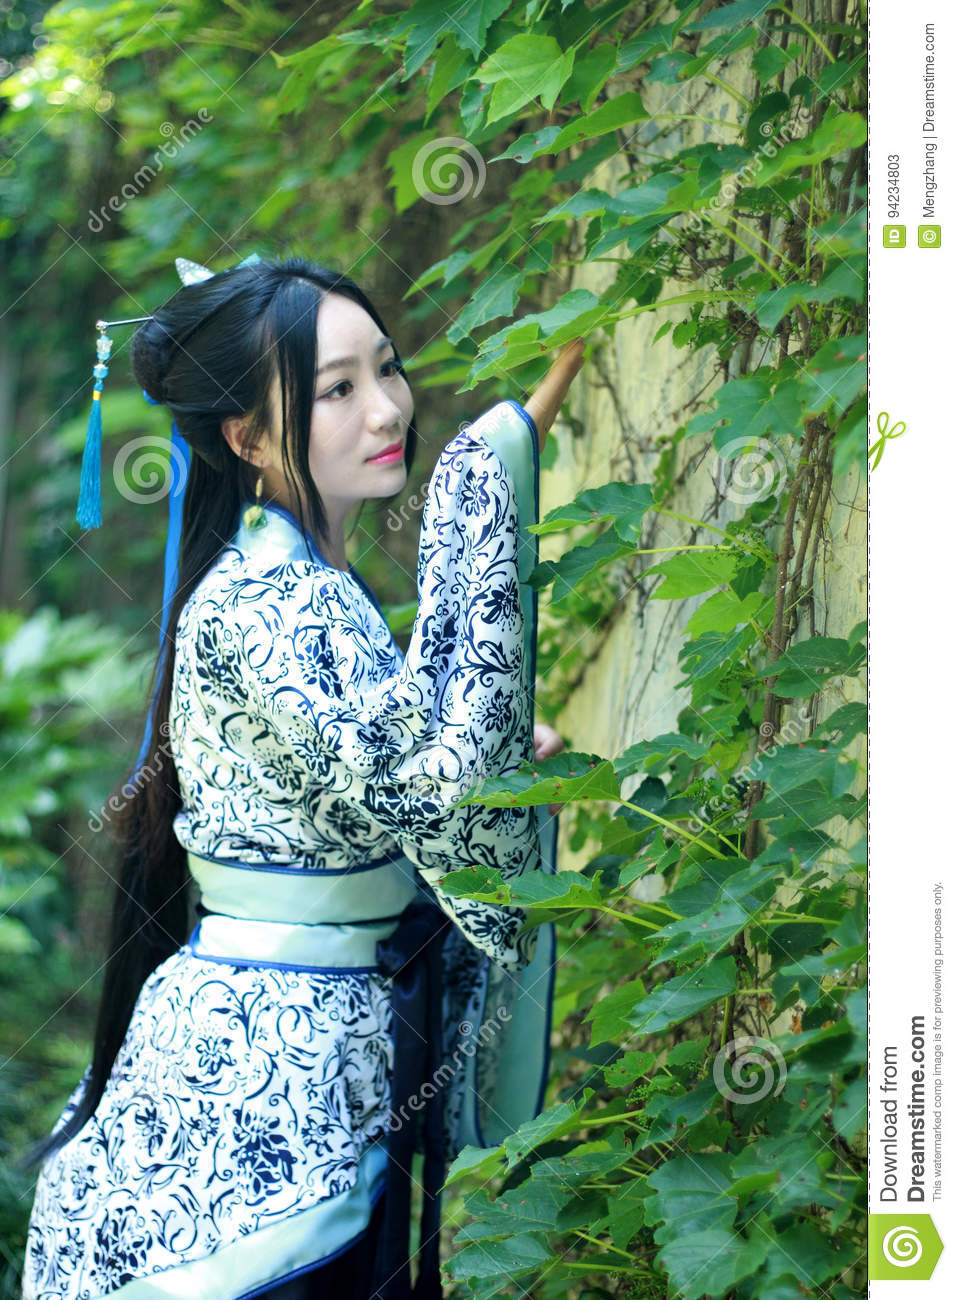 Asian Chinese woman in traditional Blue and white Hanfu dress, play in a famous garden near wall